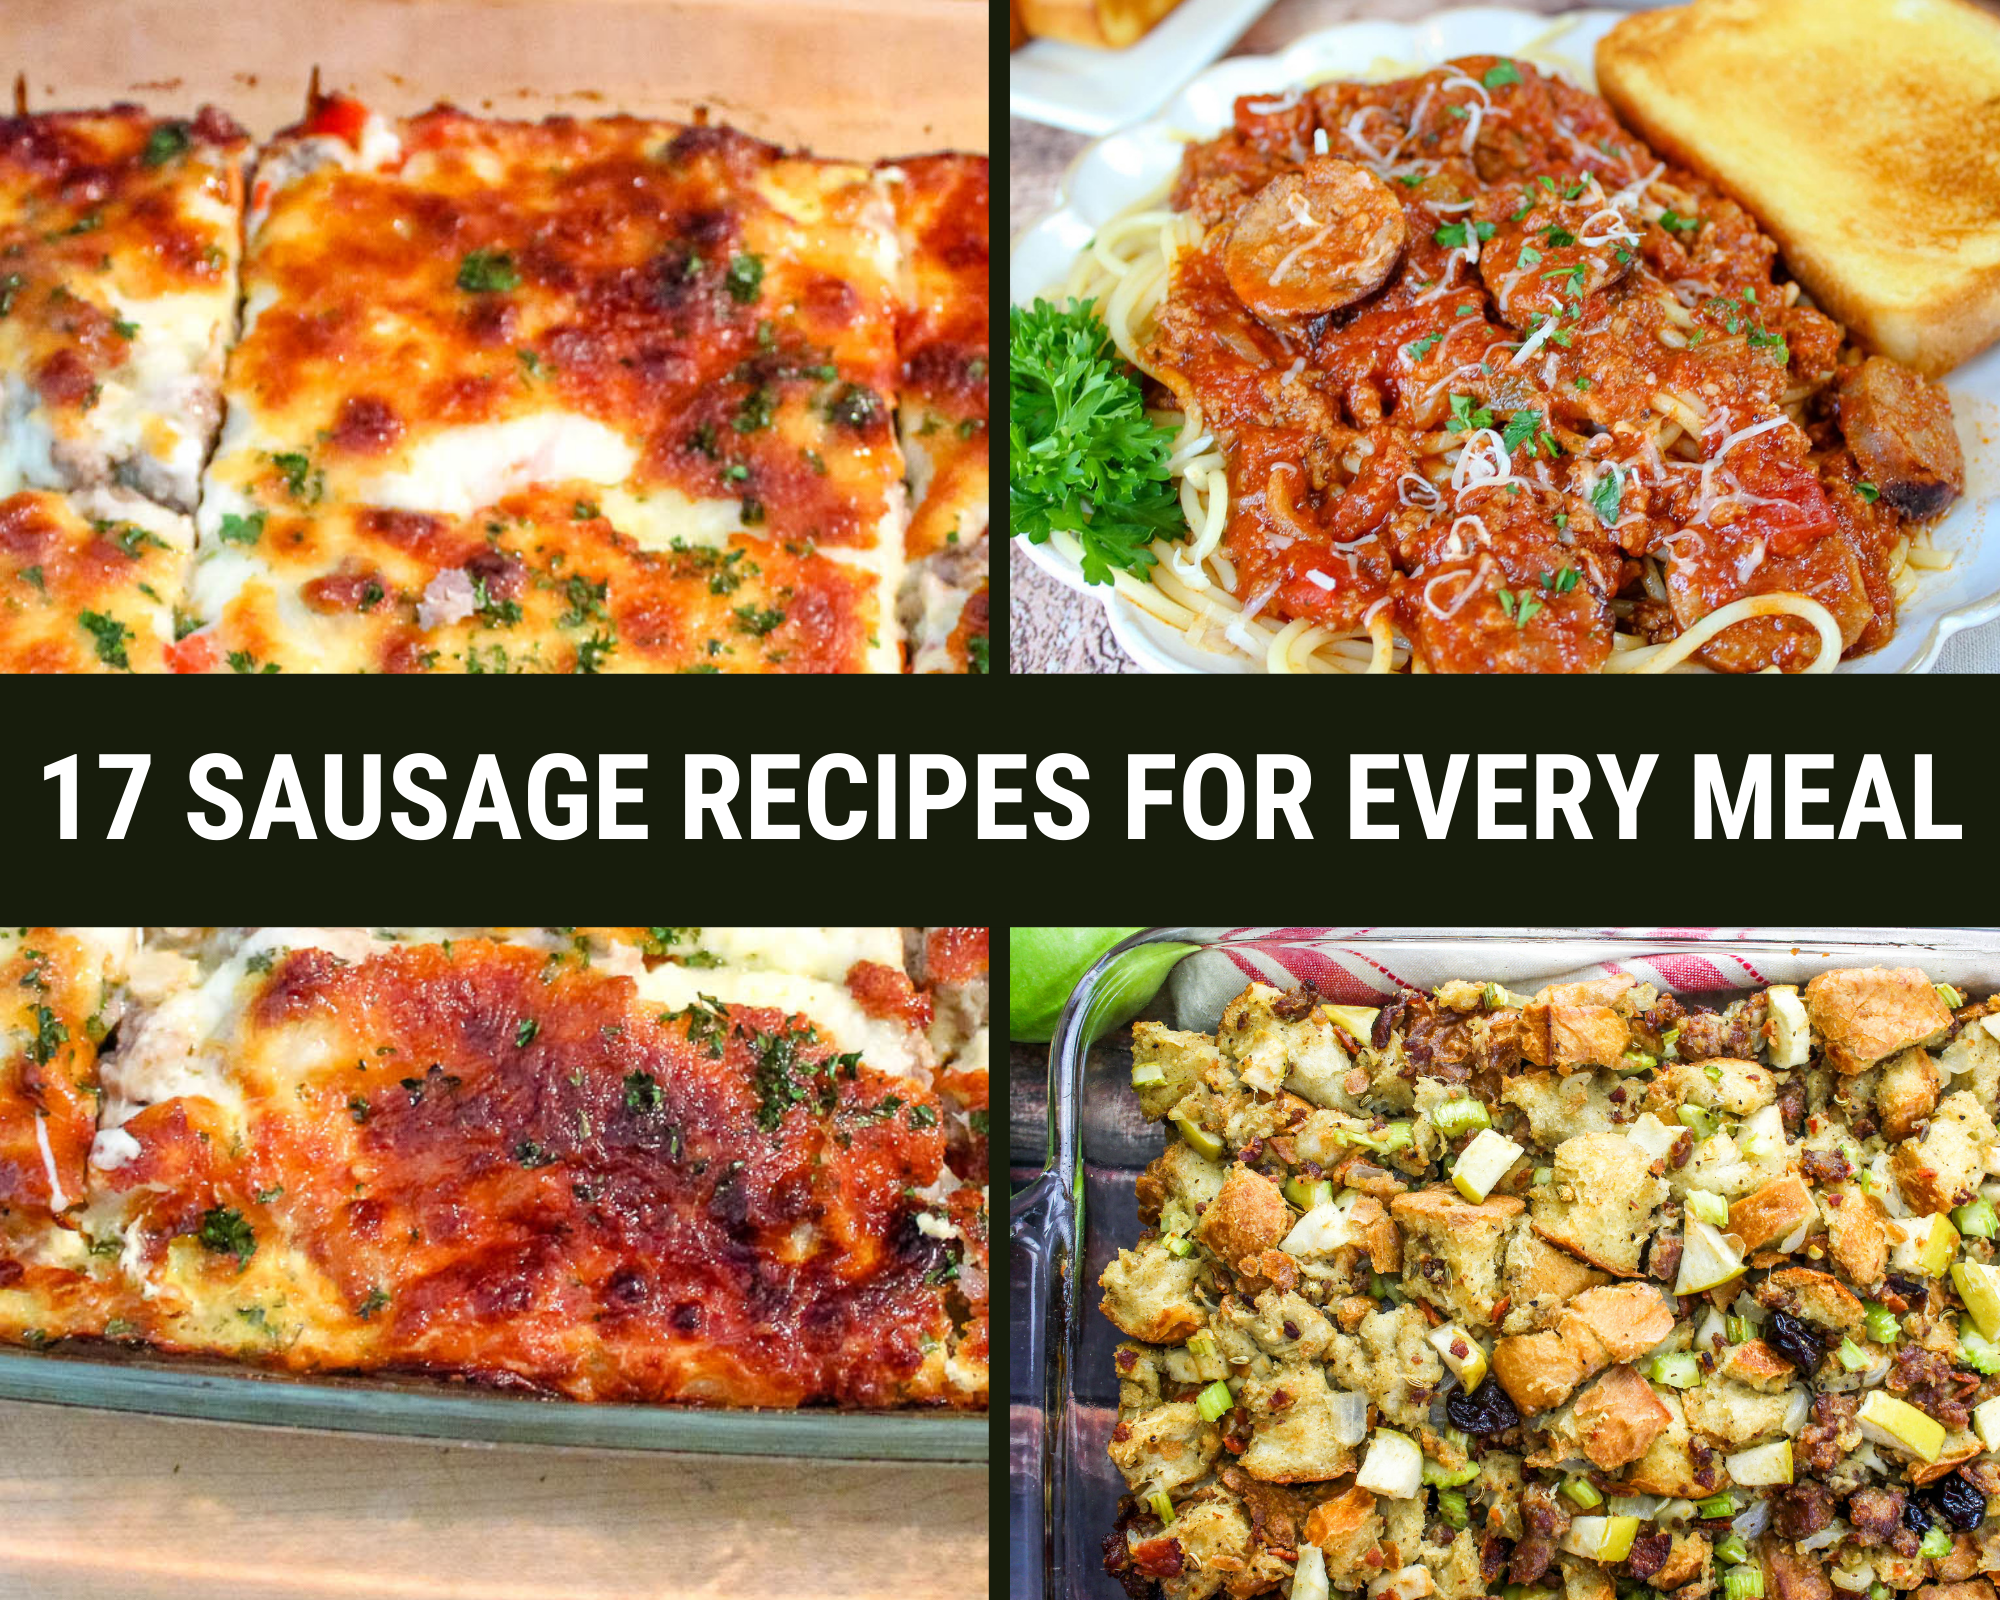 17 sausage recipes for every meal